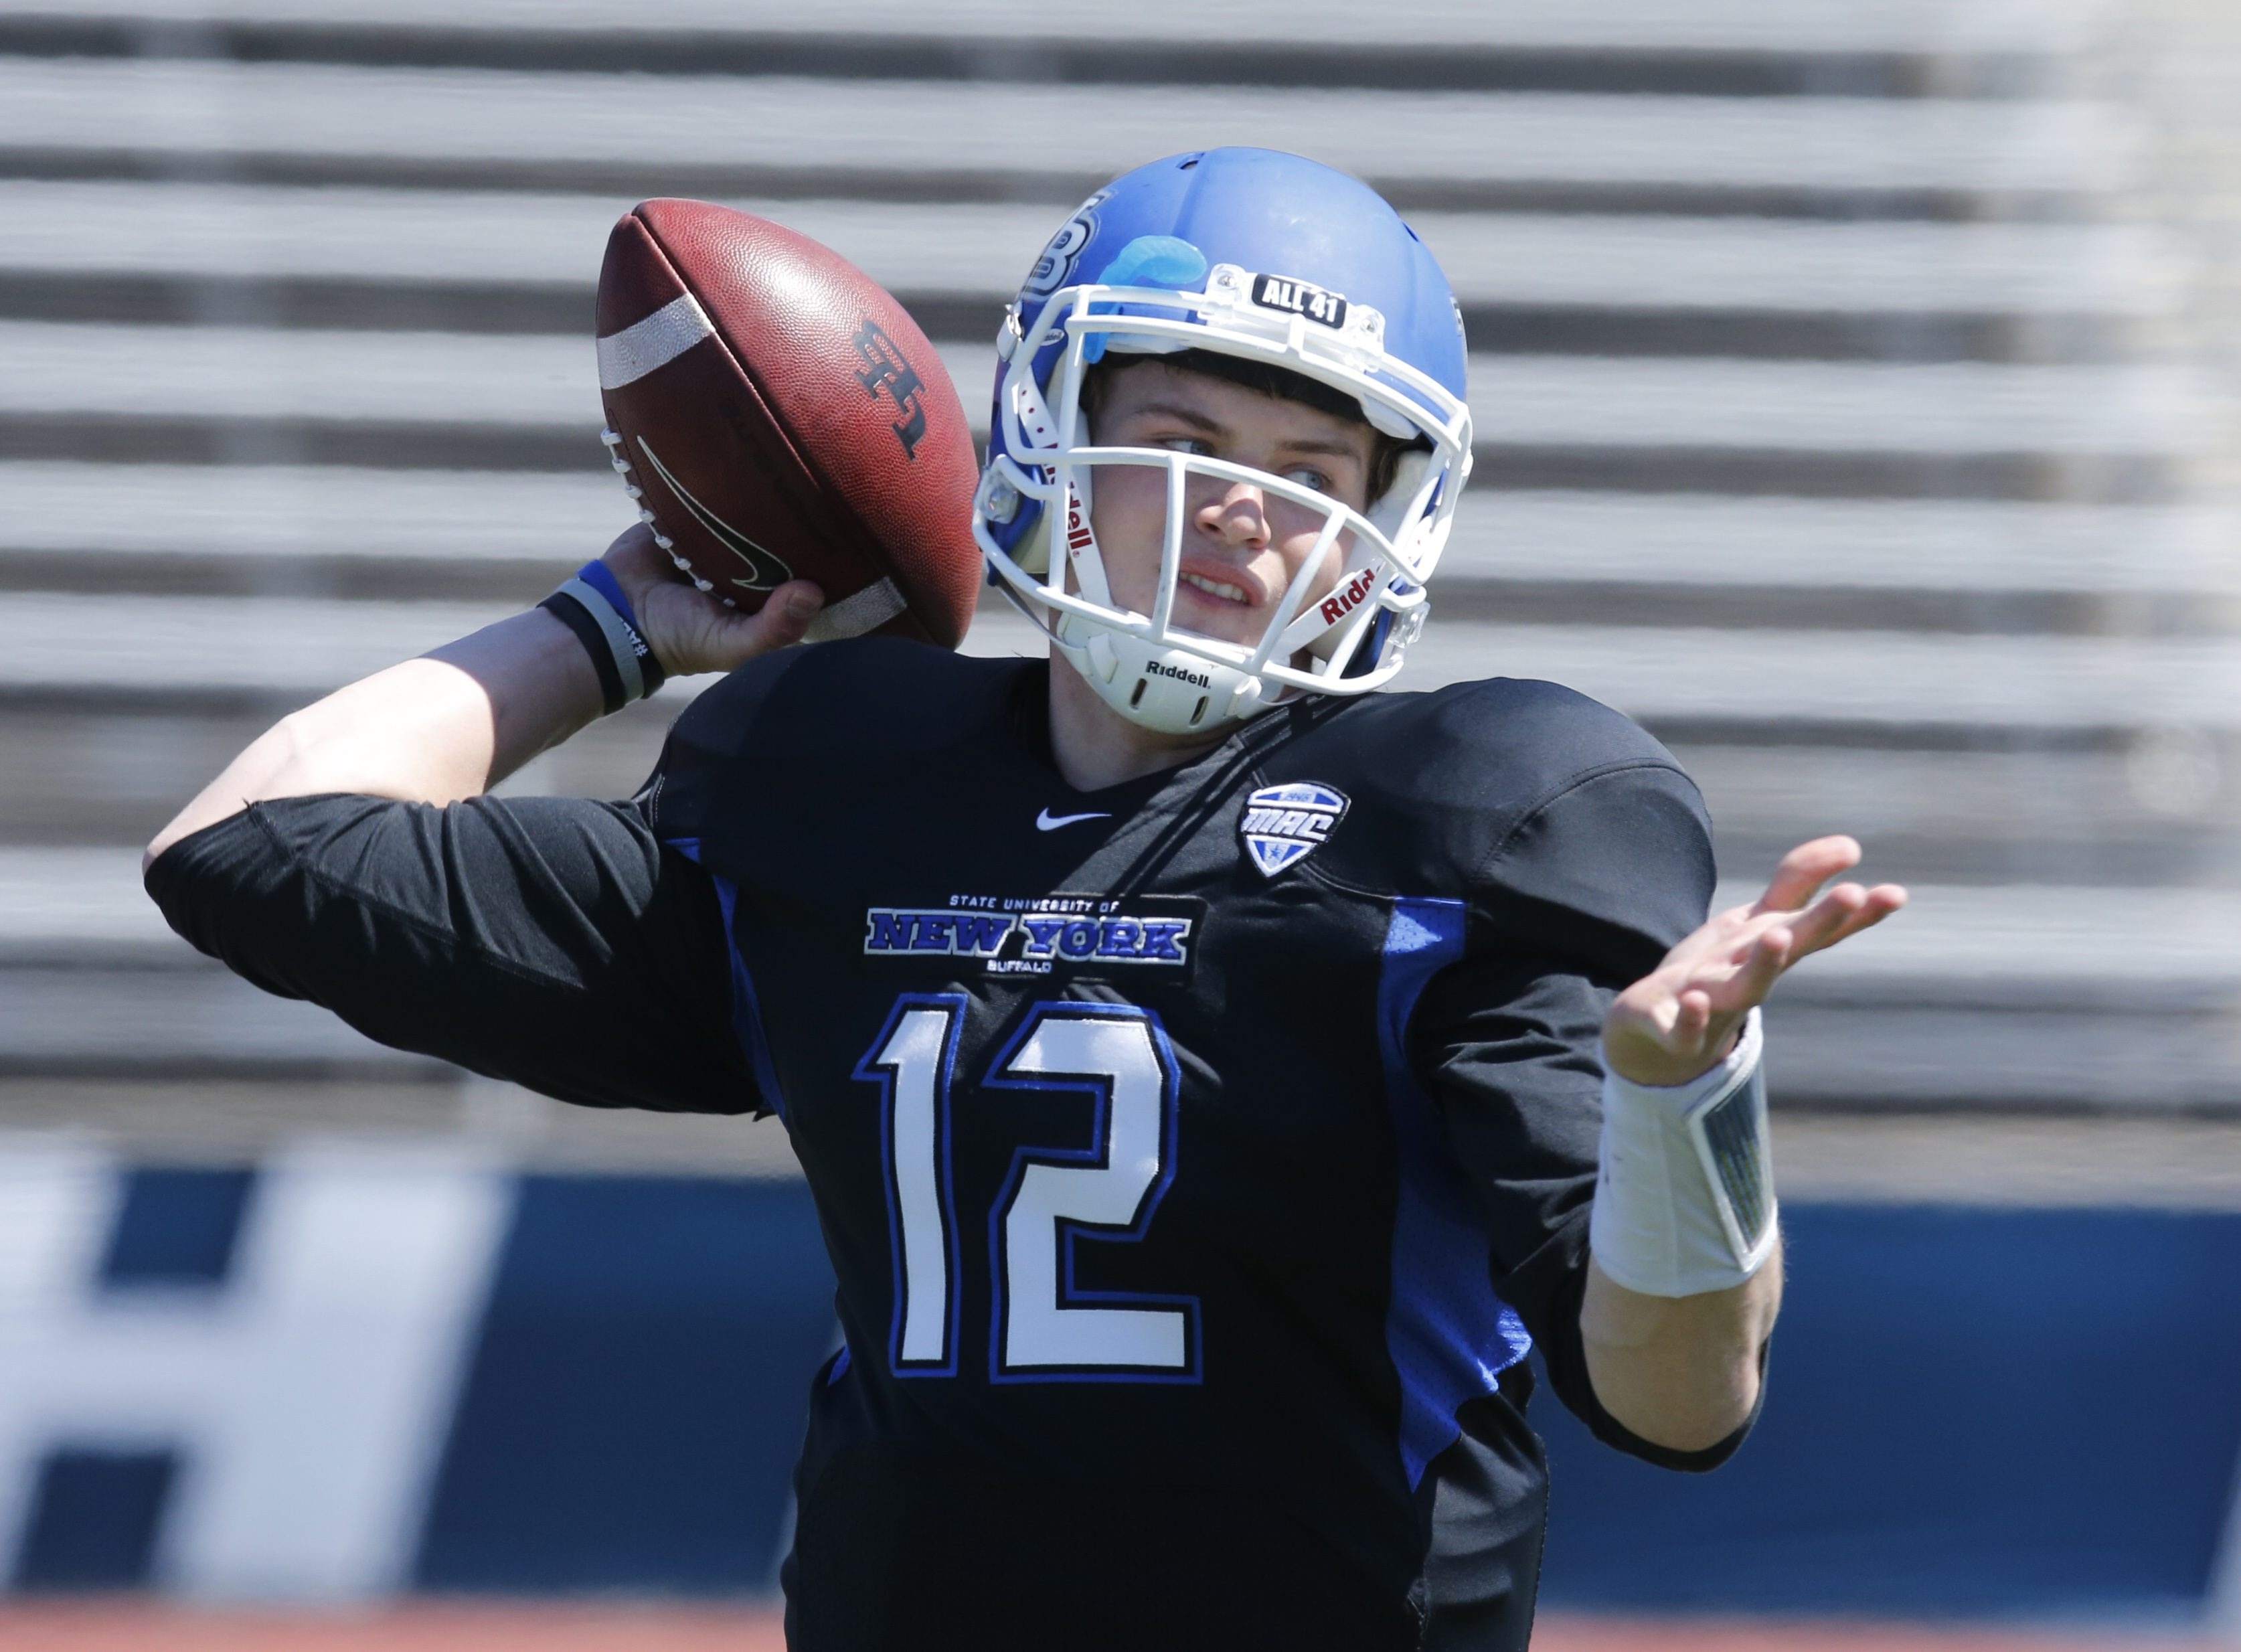 University at Buffalo quarterback Chris Merchant winds up for a pass. He threw for 132 yards on 28 snaps.